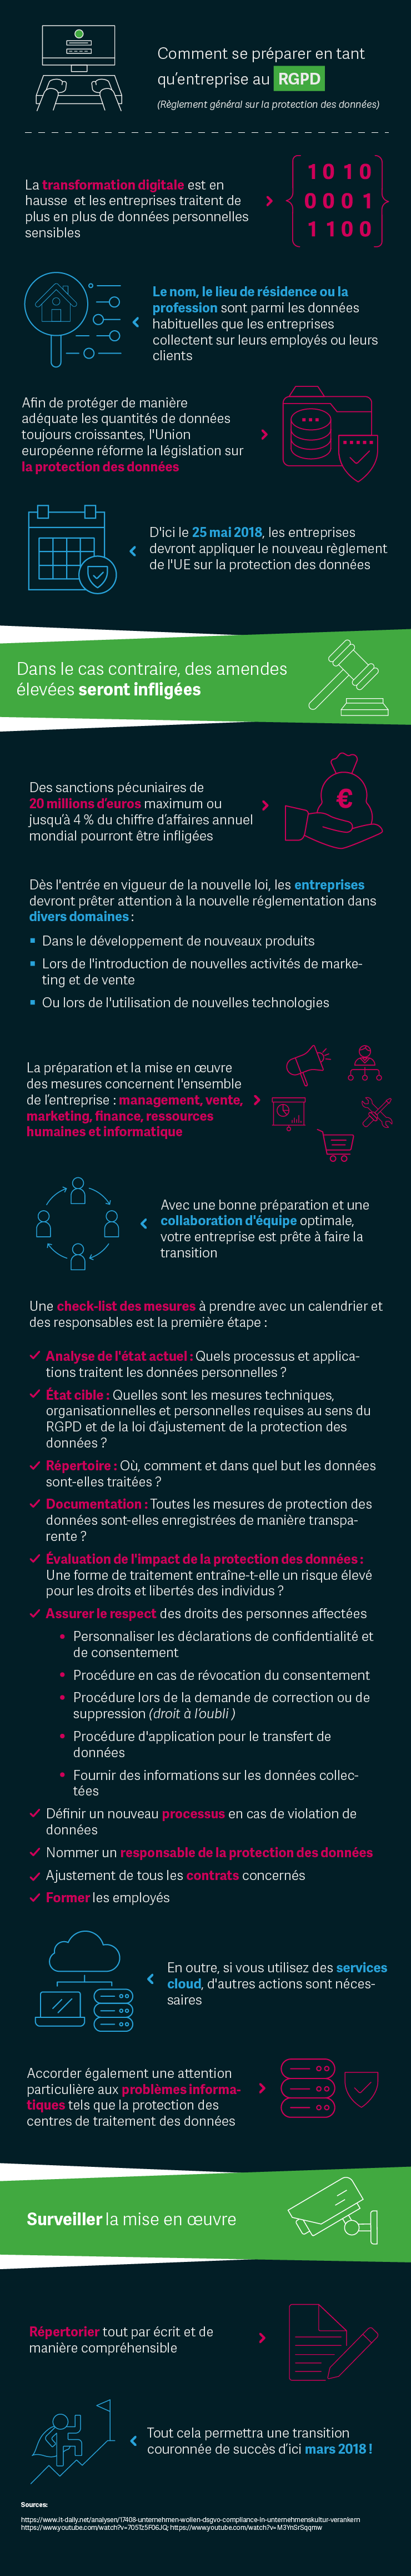 GDPR_Infographic_FR_(2)